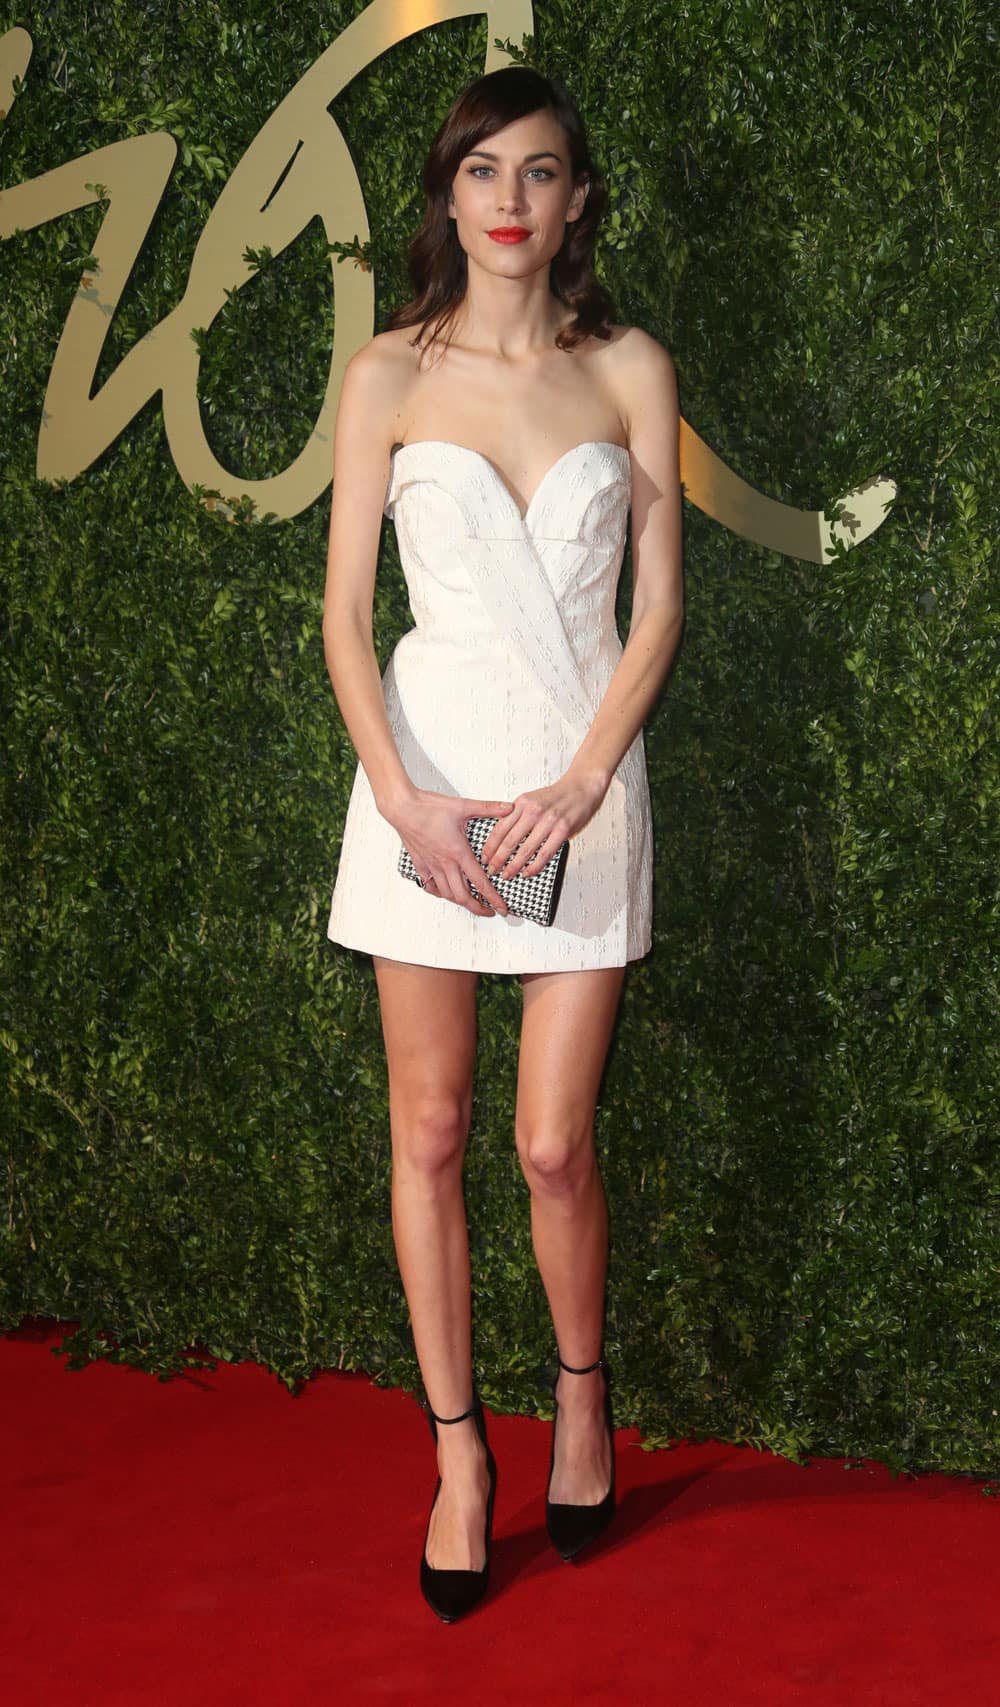 British model and presenter Alexa Chung poses for photographers as she arrives for the London Coliseum for the 2013 British Fashion Awards.